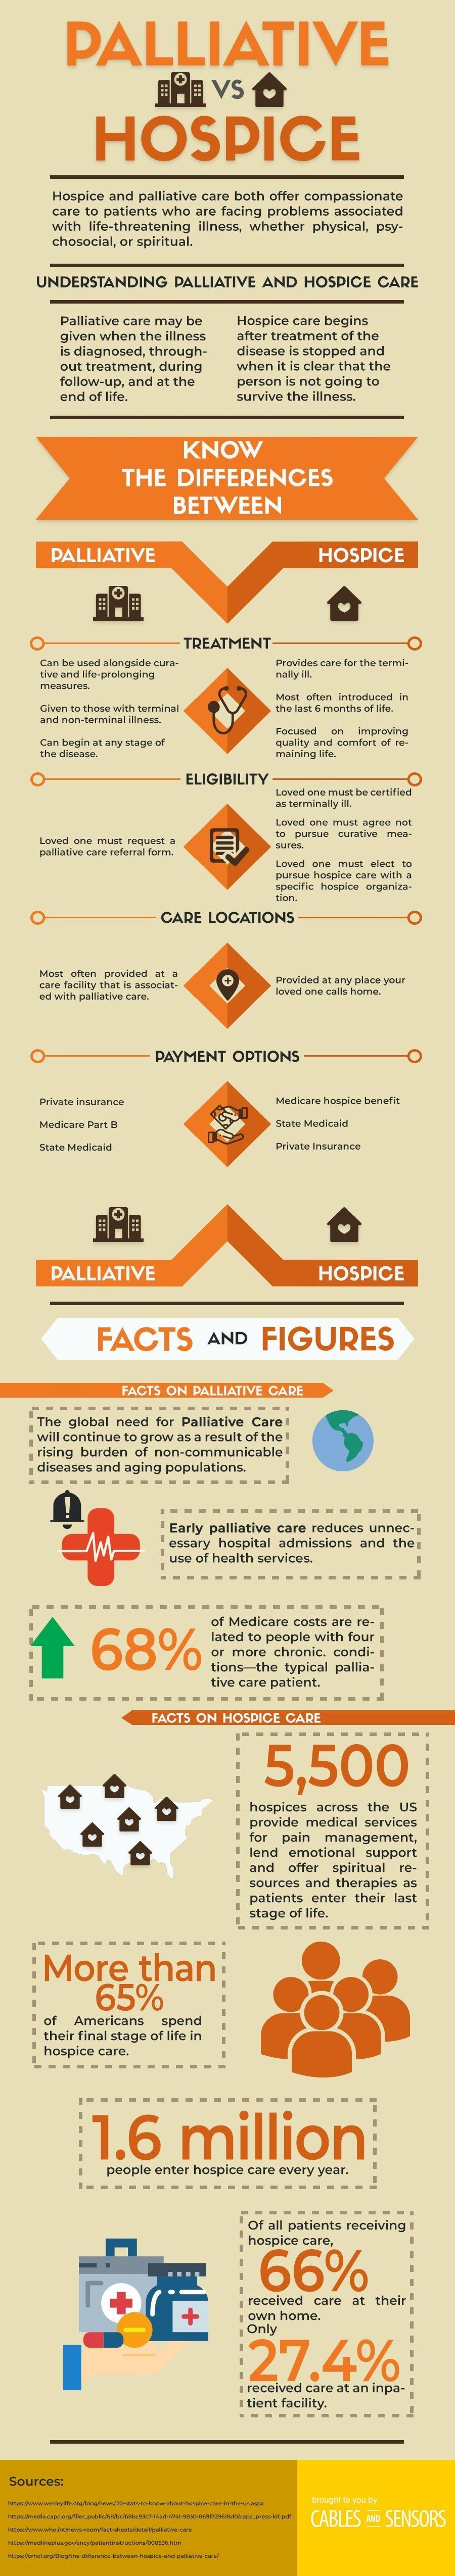 Palliative than essential aspects of health care #infographic